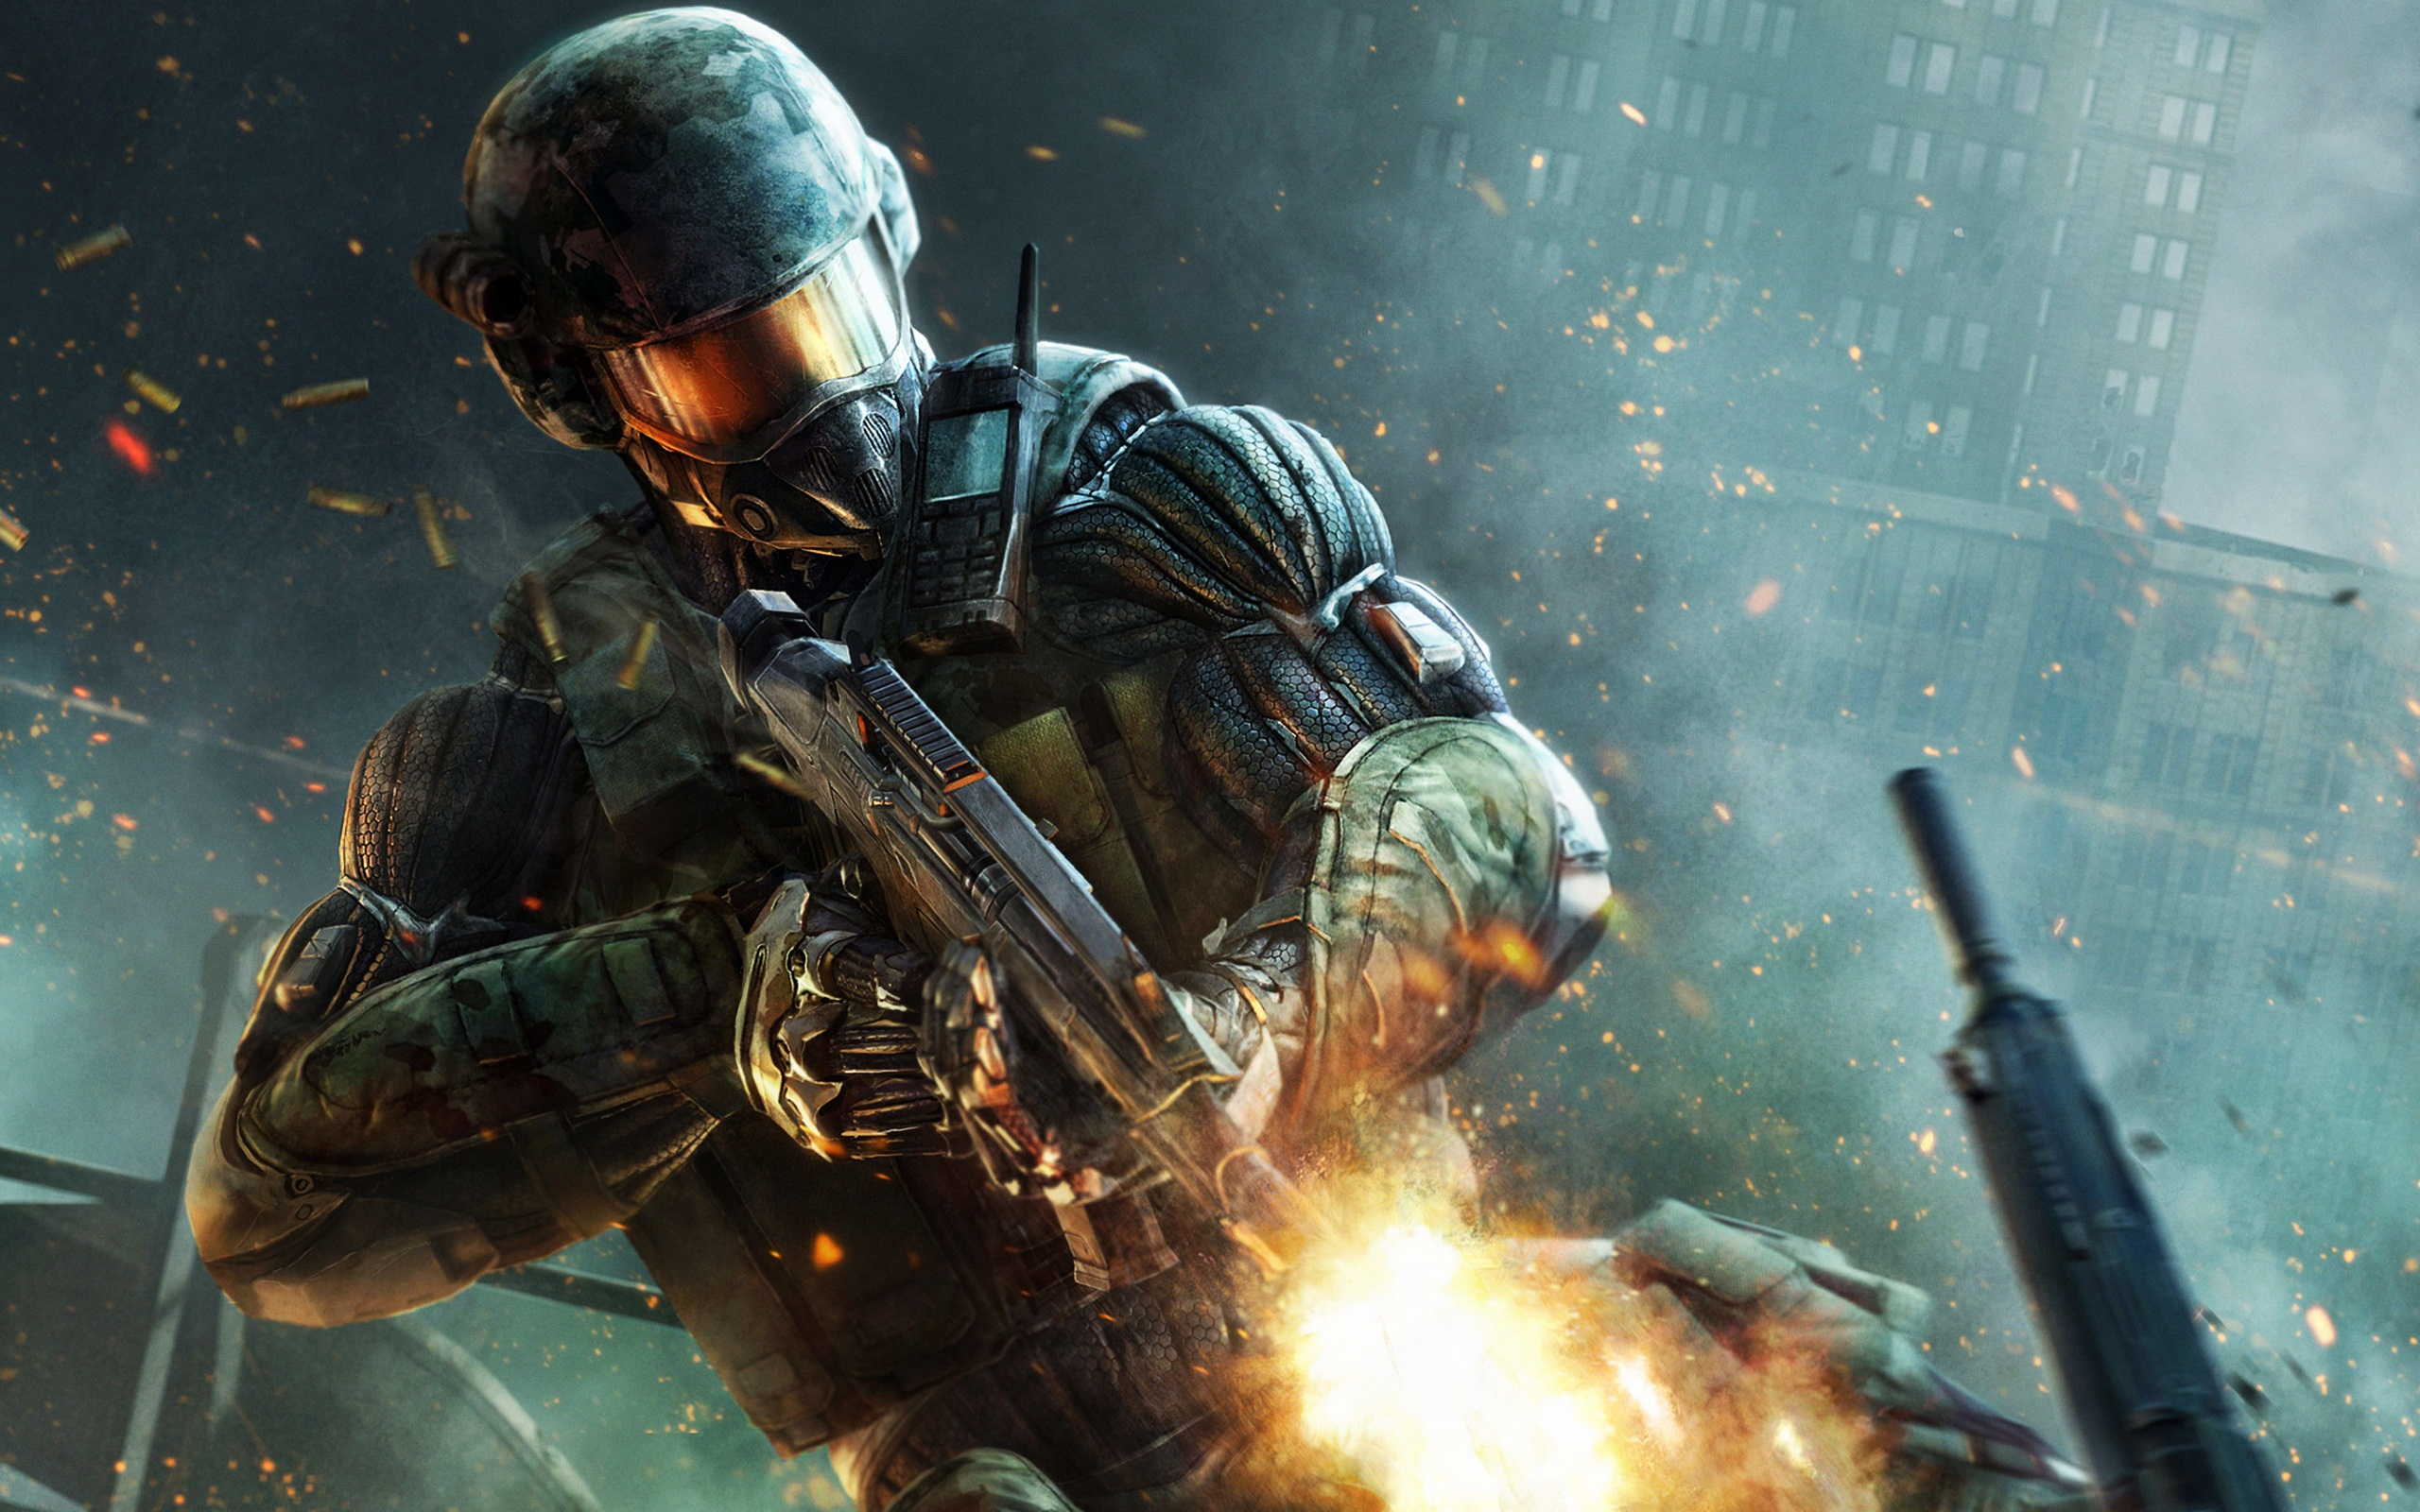 Crysis 2 Weapons Suit Car Wallpapers Images Crazy Gallery 2560x1600